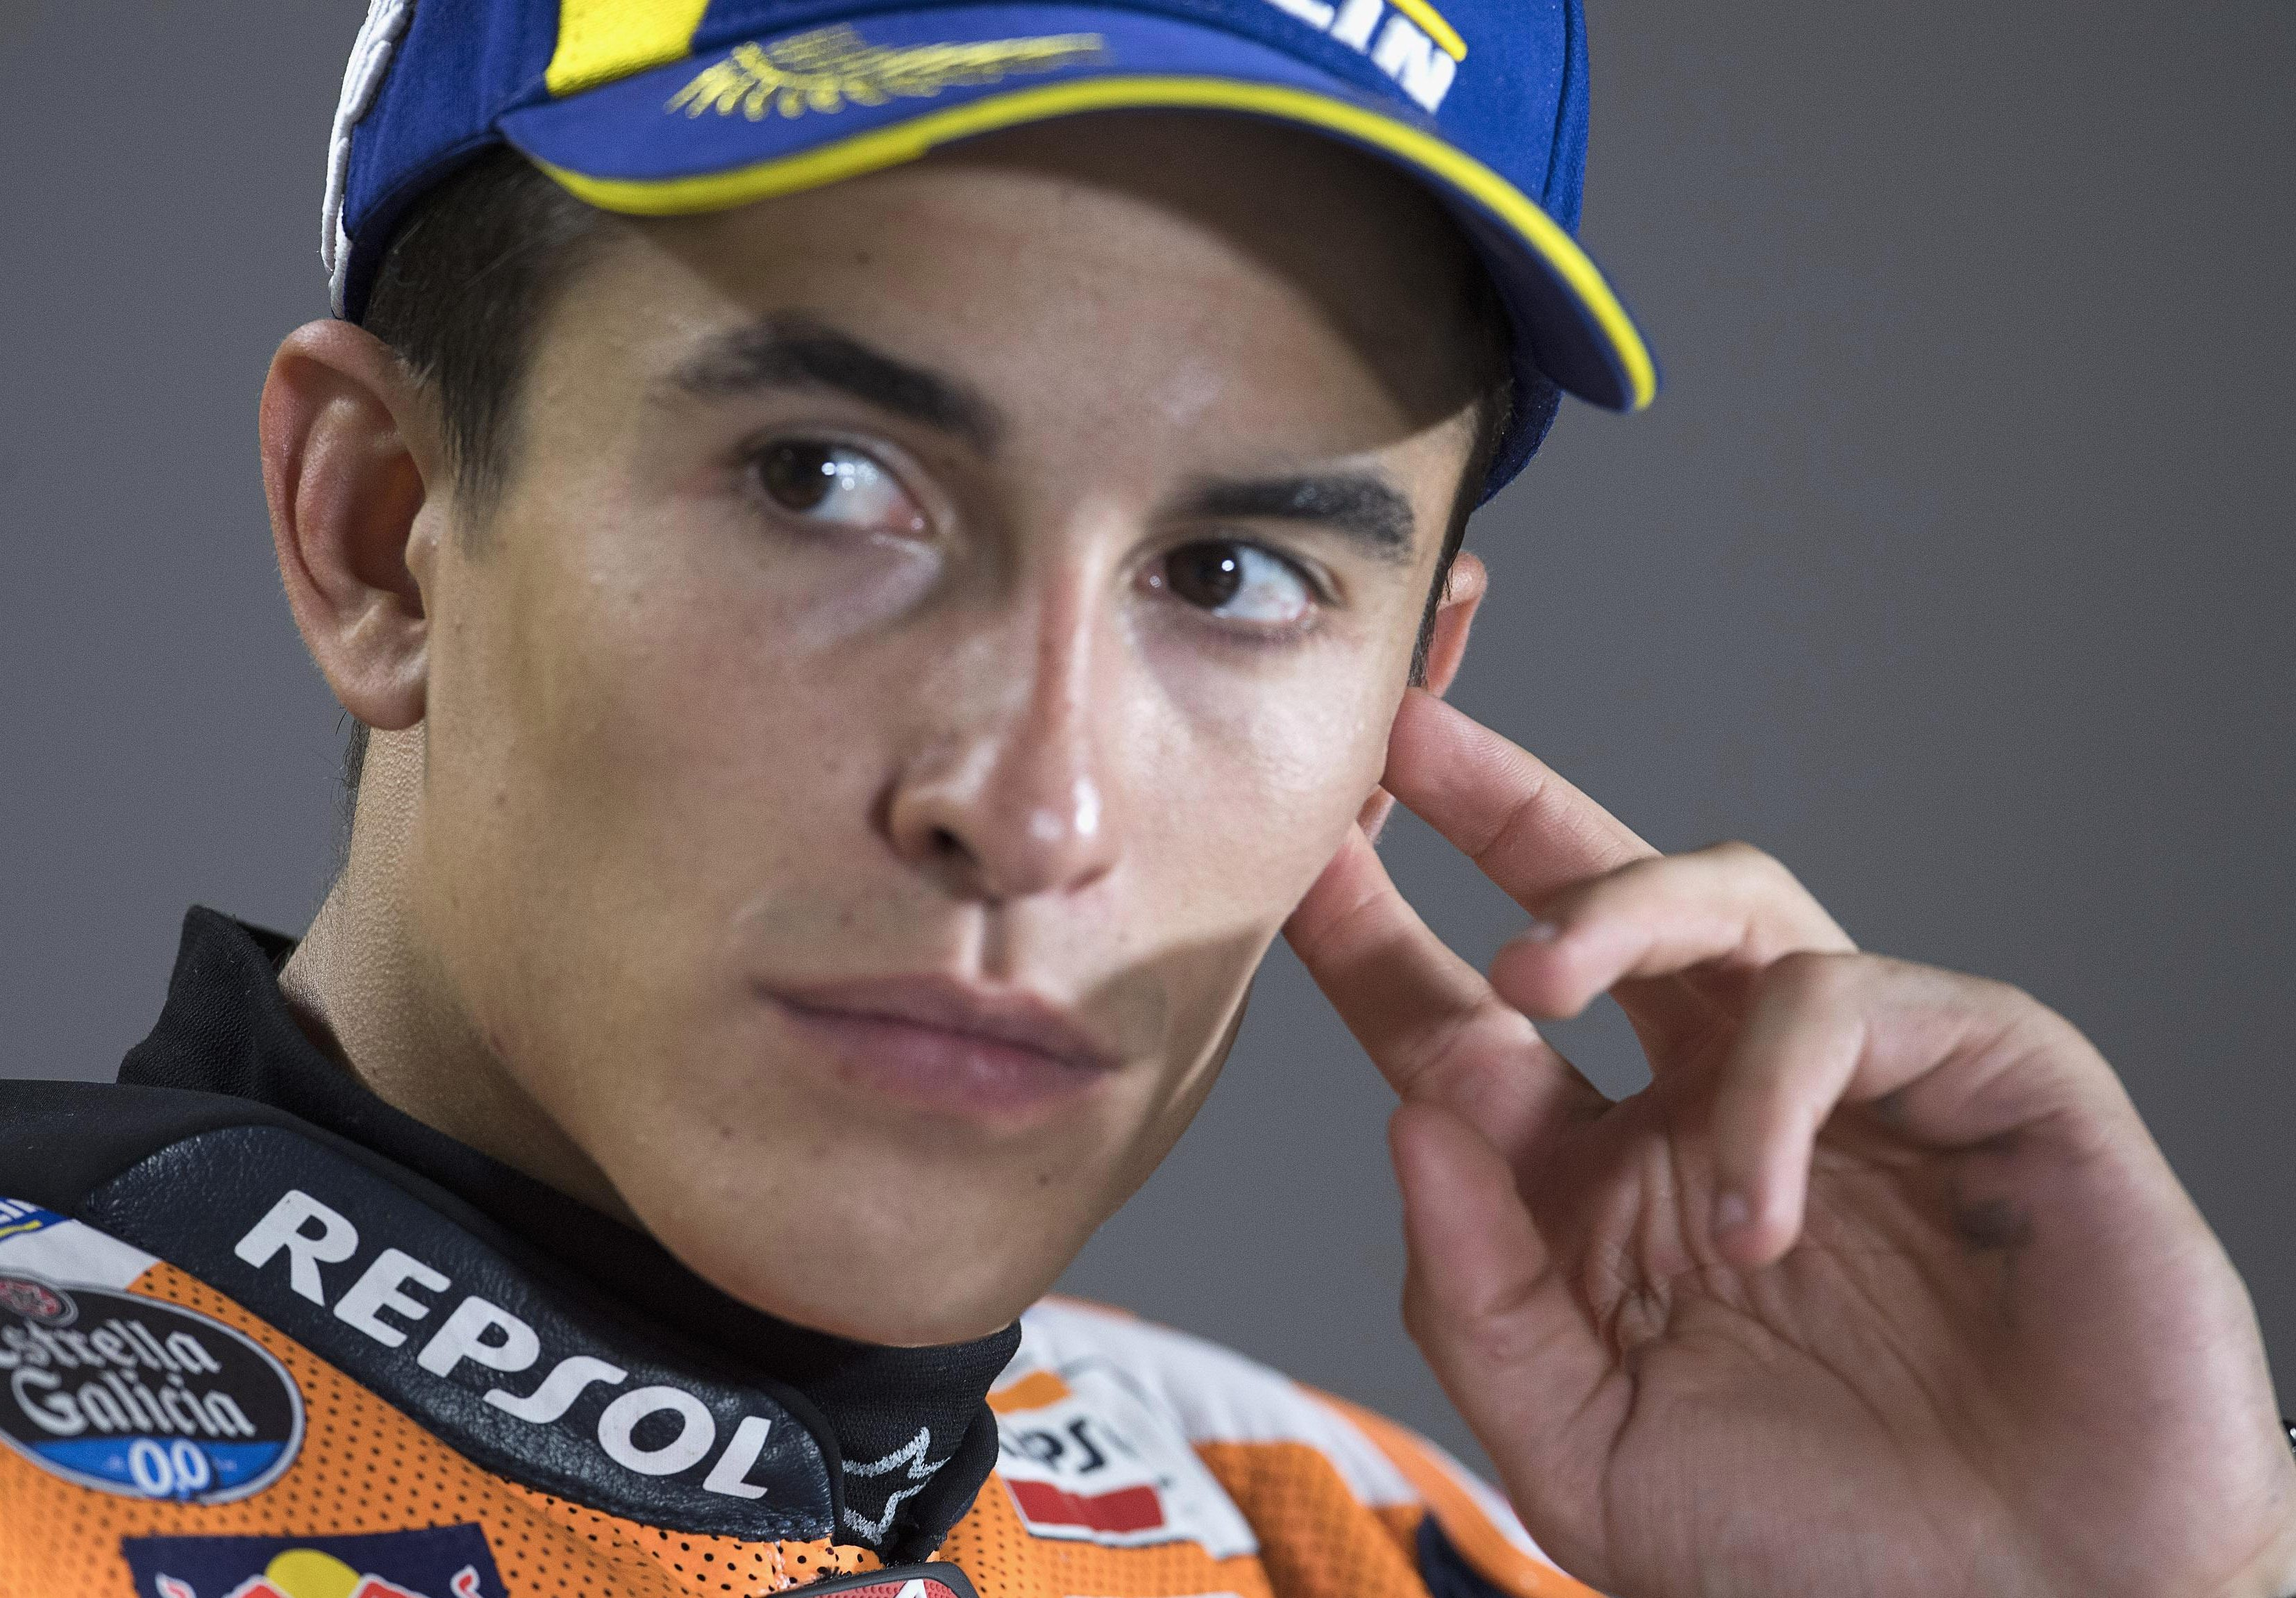 Marc Marquez holds a healthy 49-point lead at the top of the drivers' championship